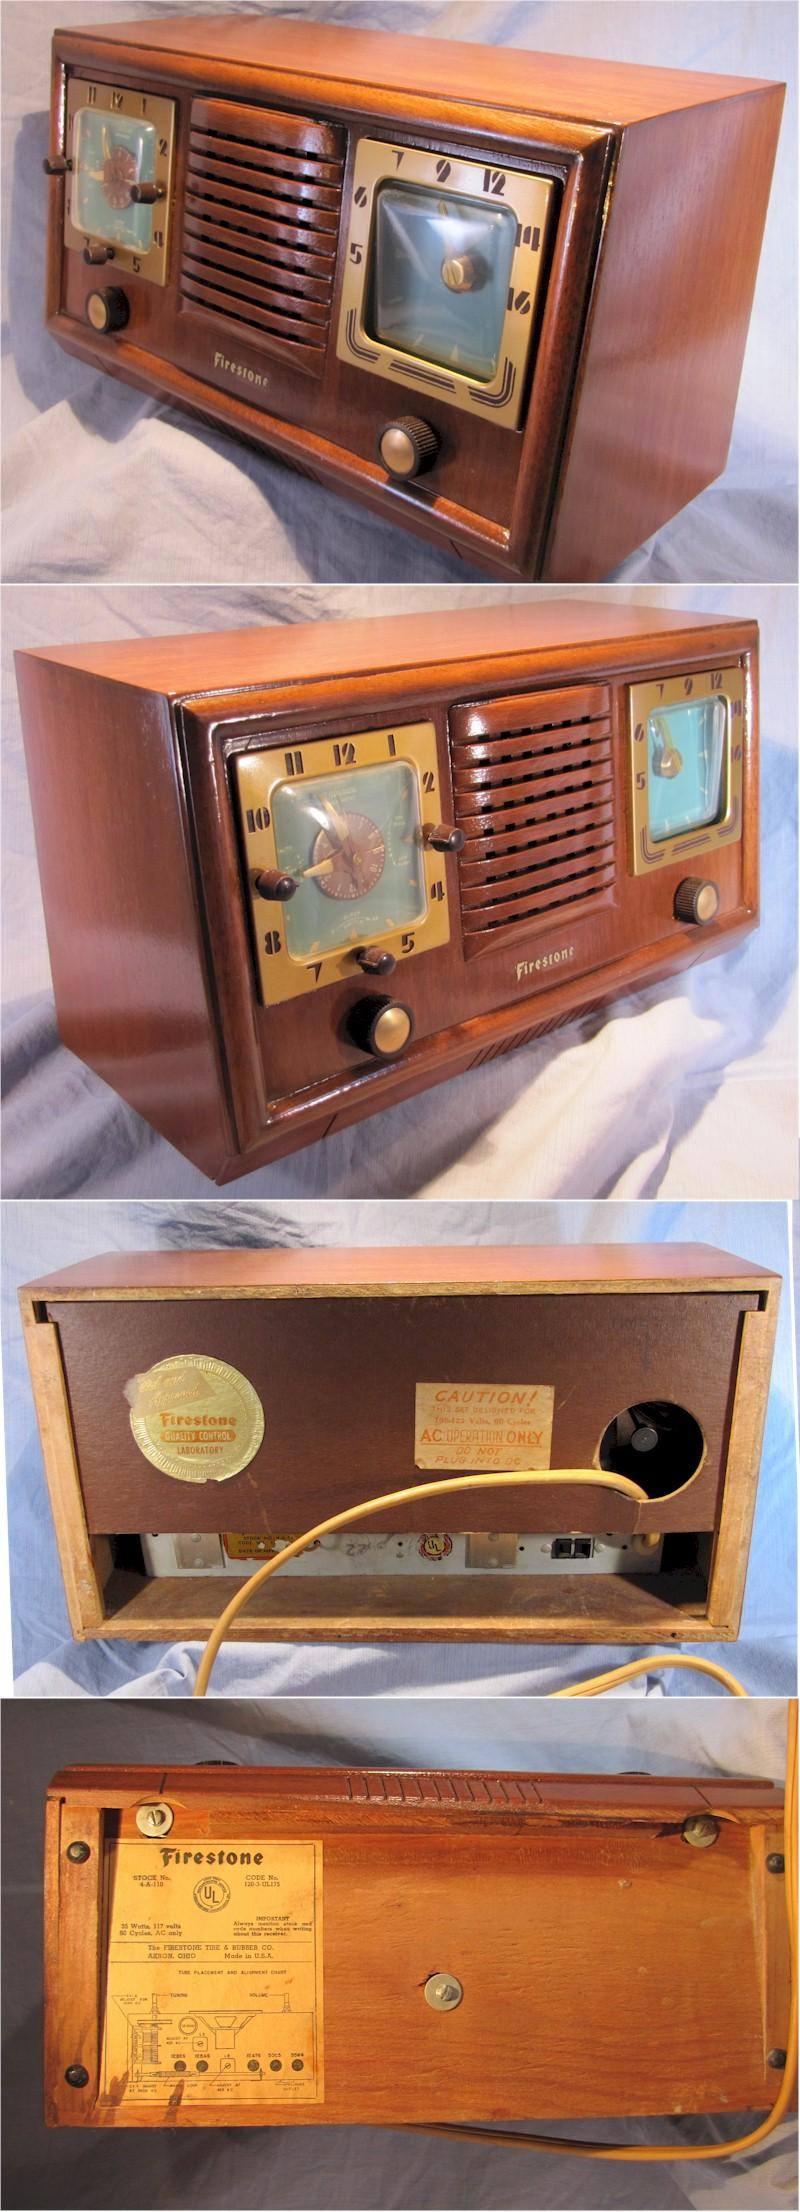 Firestone 5170 Clock Radio